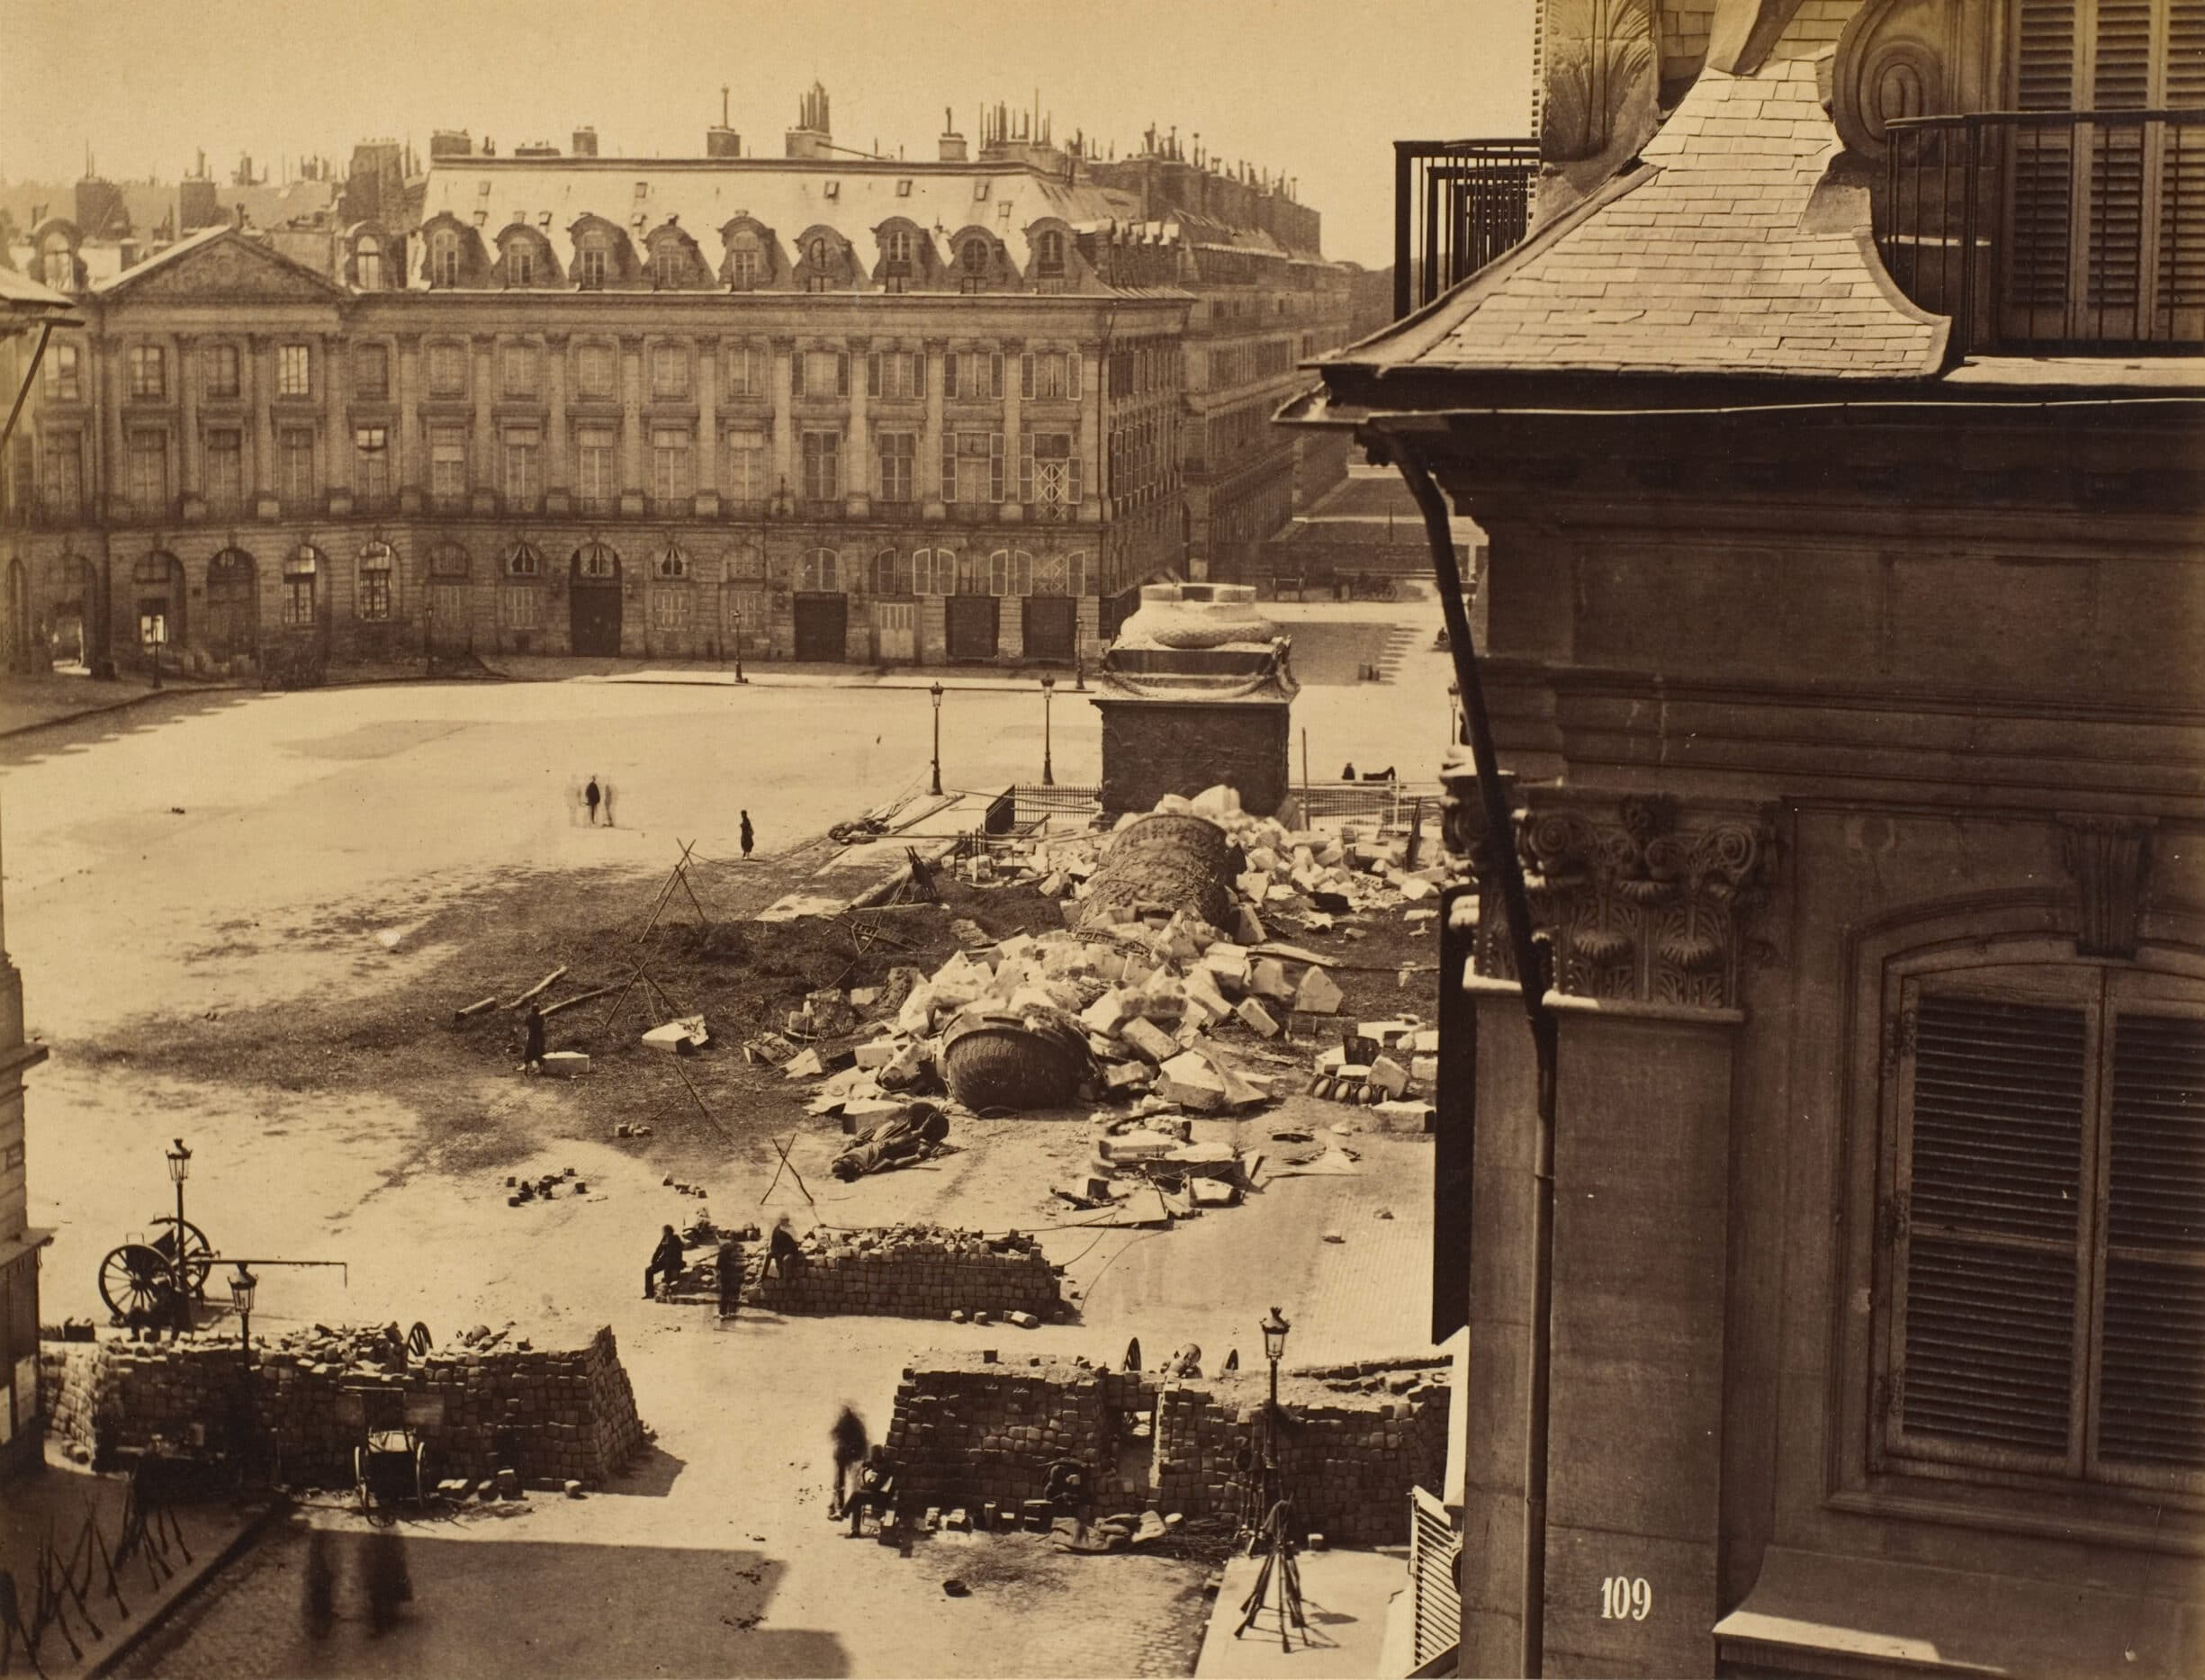 On May 16, 1871, a group of Communards pulled down the Vendôme Column. In Franck's photograph its shattered remains litter the Place Vendôme. Modeled on the ancient Column of Trajan in Rome, the Vendôme Column was built by Napoleon I in the first decade of the nineteenth century as a glorification of the victorious French soldiers who defeated the Russian-Austrian alliance at the Battle of Austerlitz; the seventy-six battle-scene bas-reliefs that spiral up the shaft were cast from the bronze of 250 captured Russian cannons. Louis-Philippe crowned the column with a statue of Napoleon in 1833, and Napoleon III replaced it thirty years later with another of Napoleon in Roman costume. Photo: Albumen silver print from glass negative by François-Marie-Louis-Alexandre Gobinet de Villecholle Franck (1816–1906), French photographer. Collection: Metropolitan Museum of Art, New York. Public Domain.